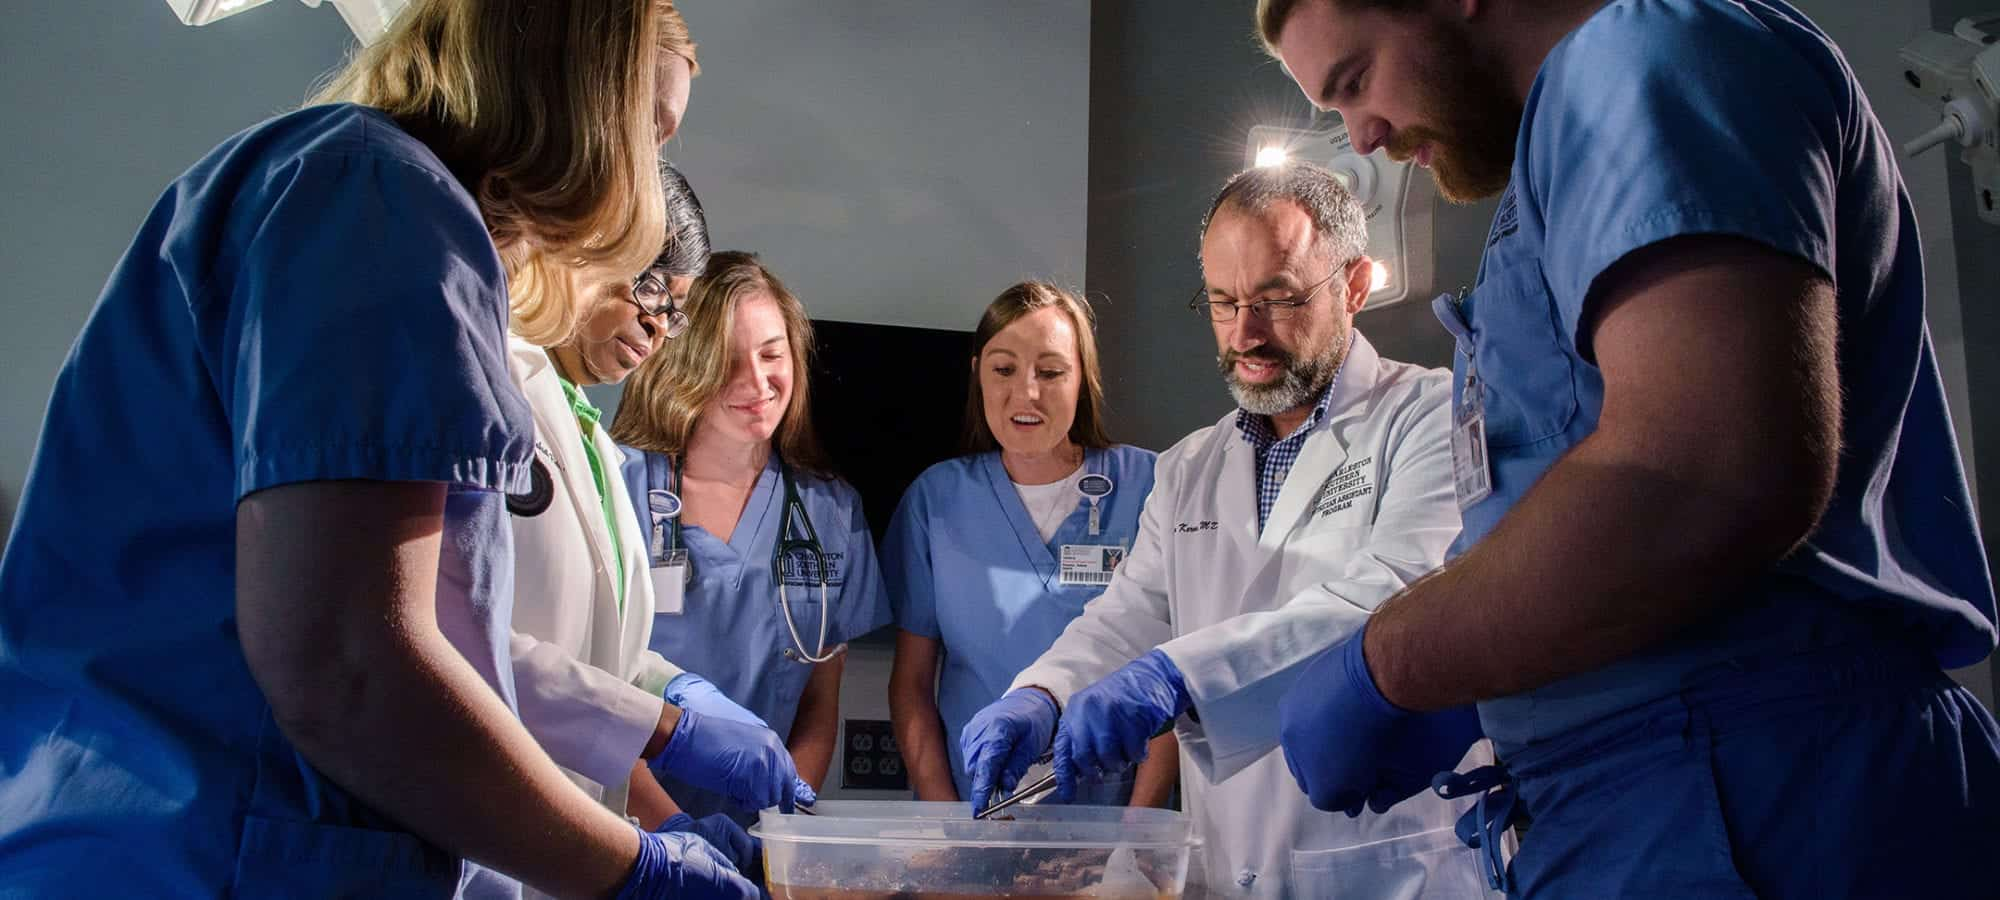 Physician assistant students in a cadaver lab overseeing the dissection of an organ.